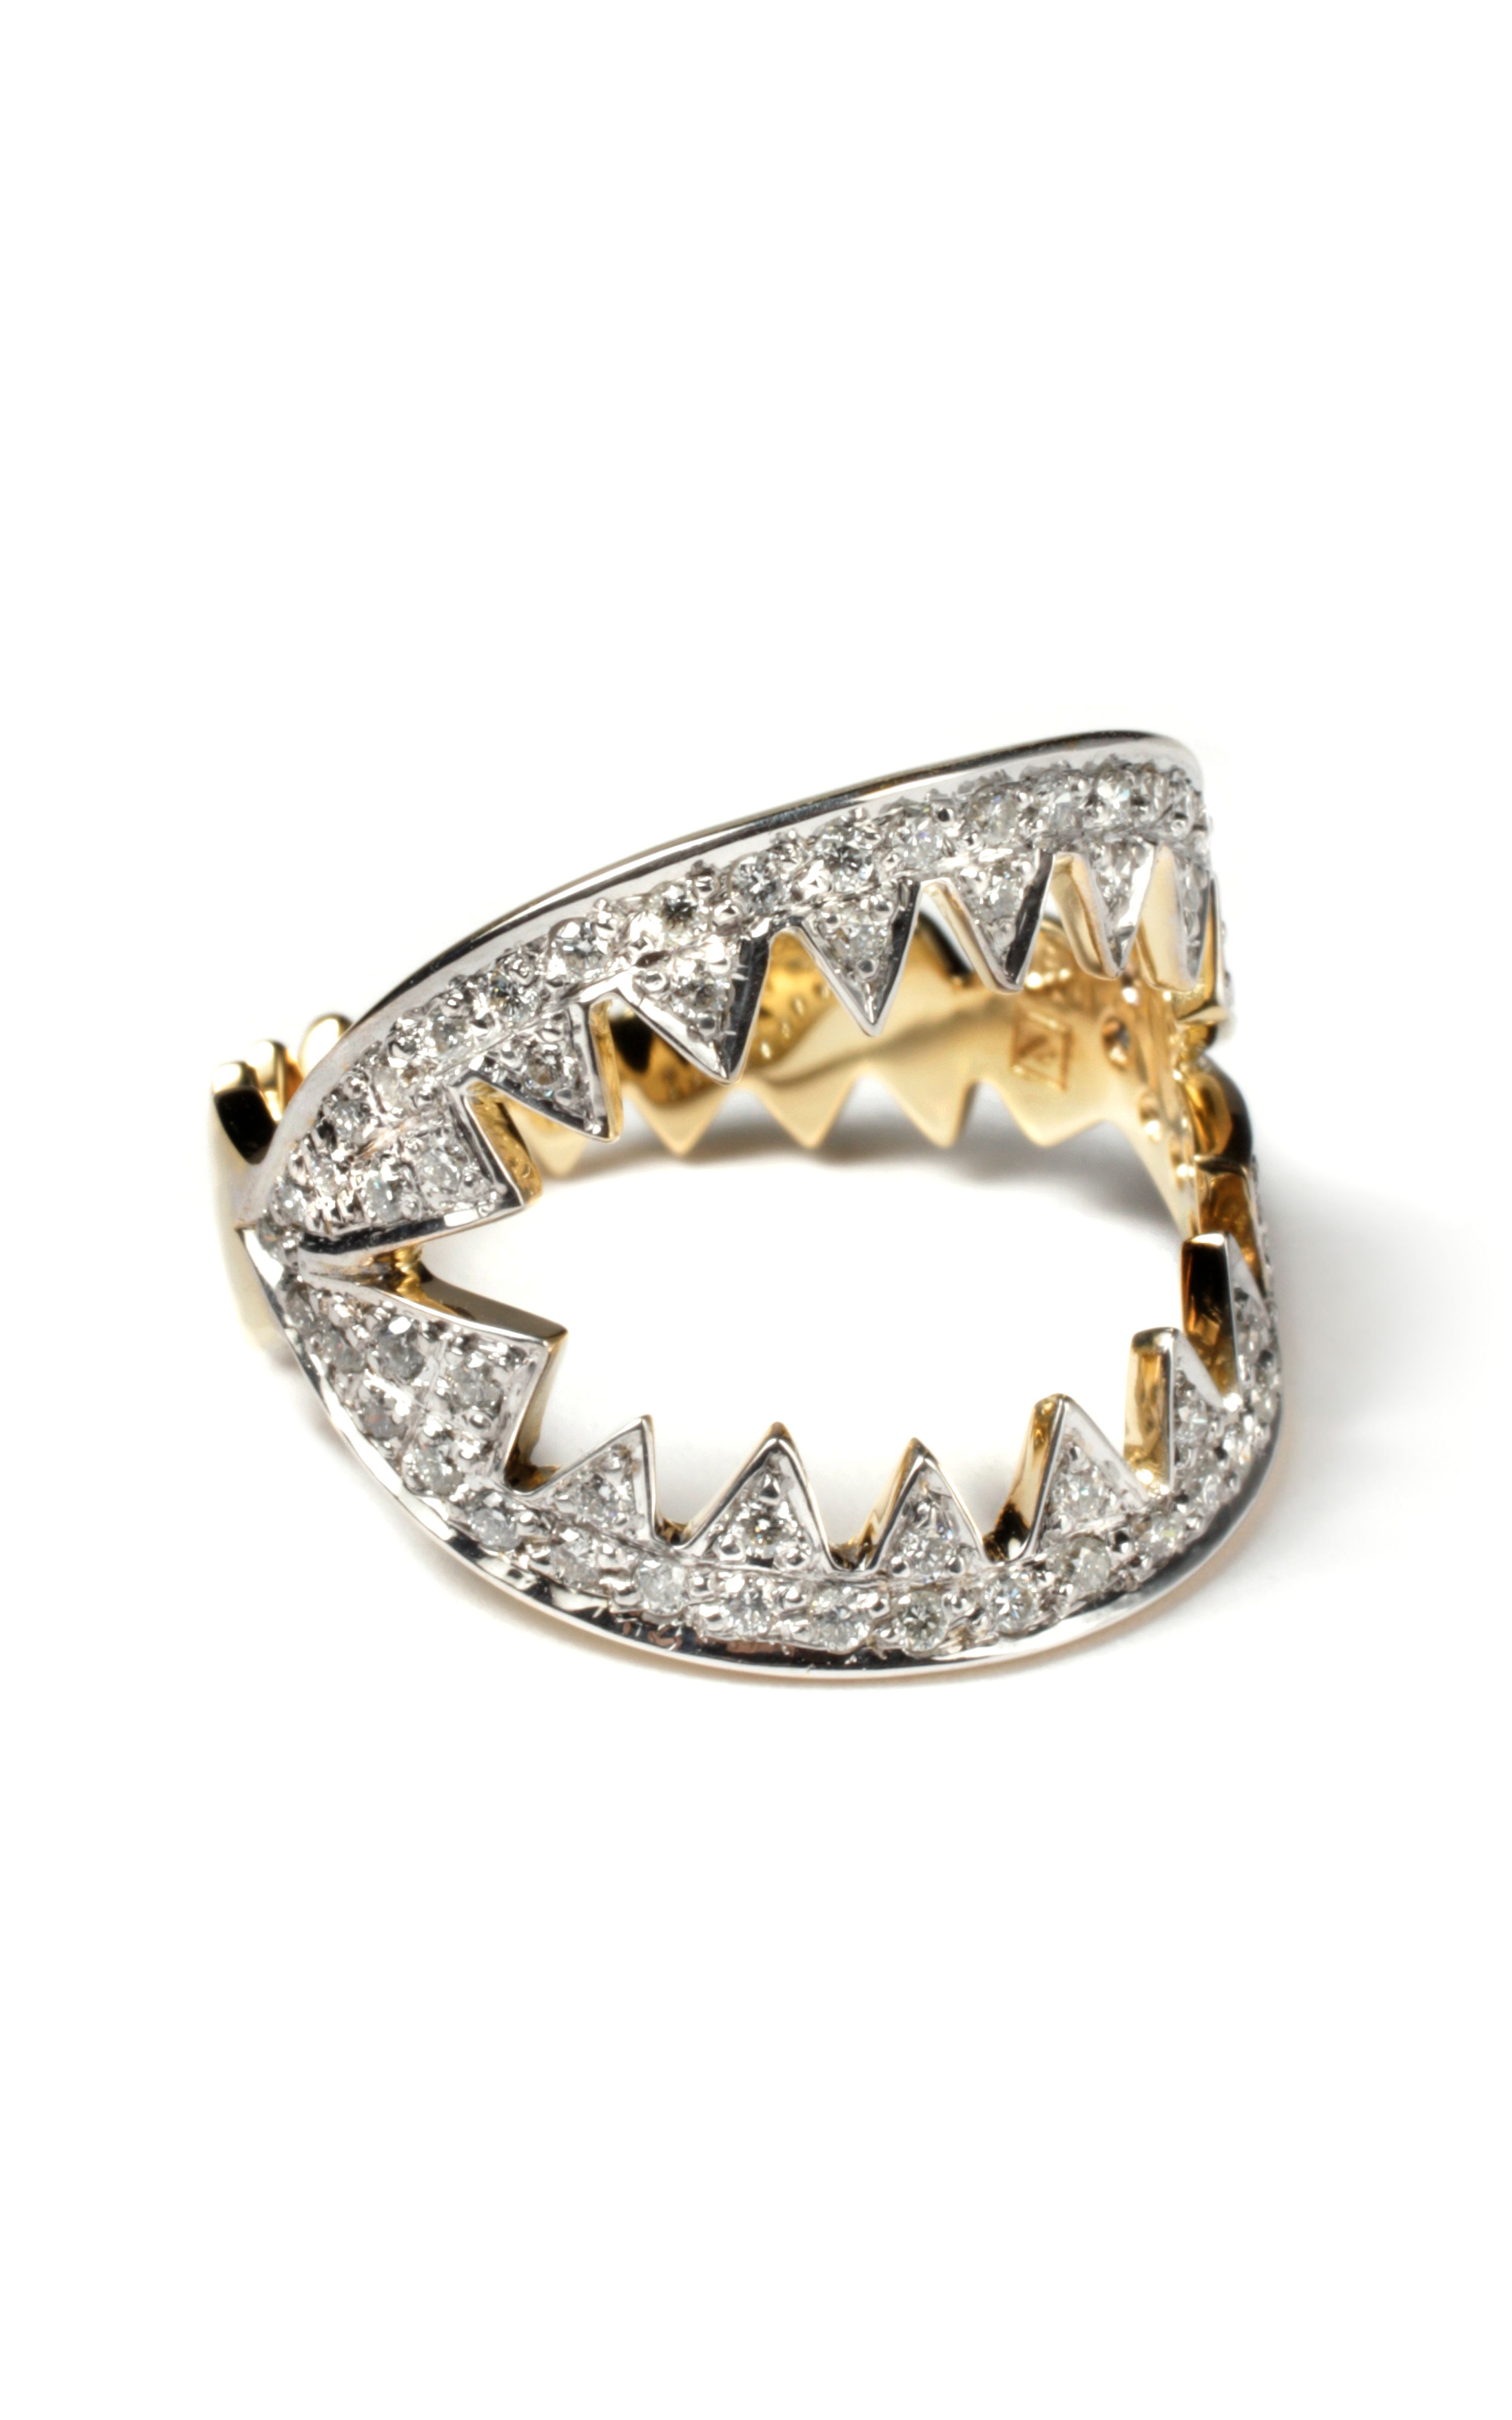 Shop Ara Vartanian White Diamond Jaw Ring at Moda Operandi This shark jaw-inspired ring features round cut white diamonds throughout and a solid yellow gold band Yellow gold, 0.37k white diamonds Made in Brazil